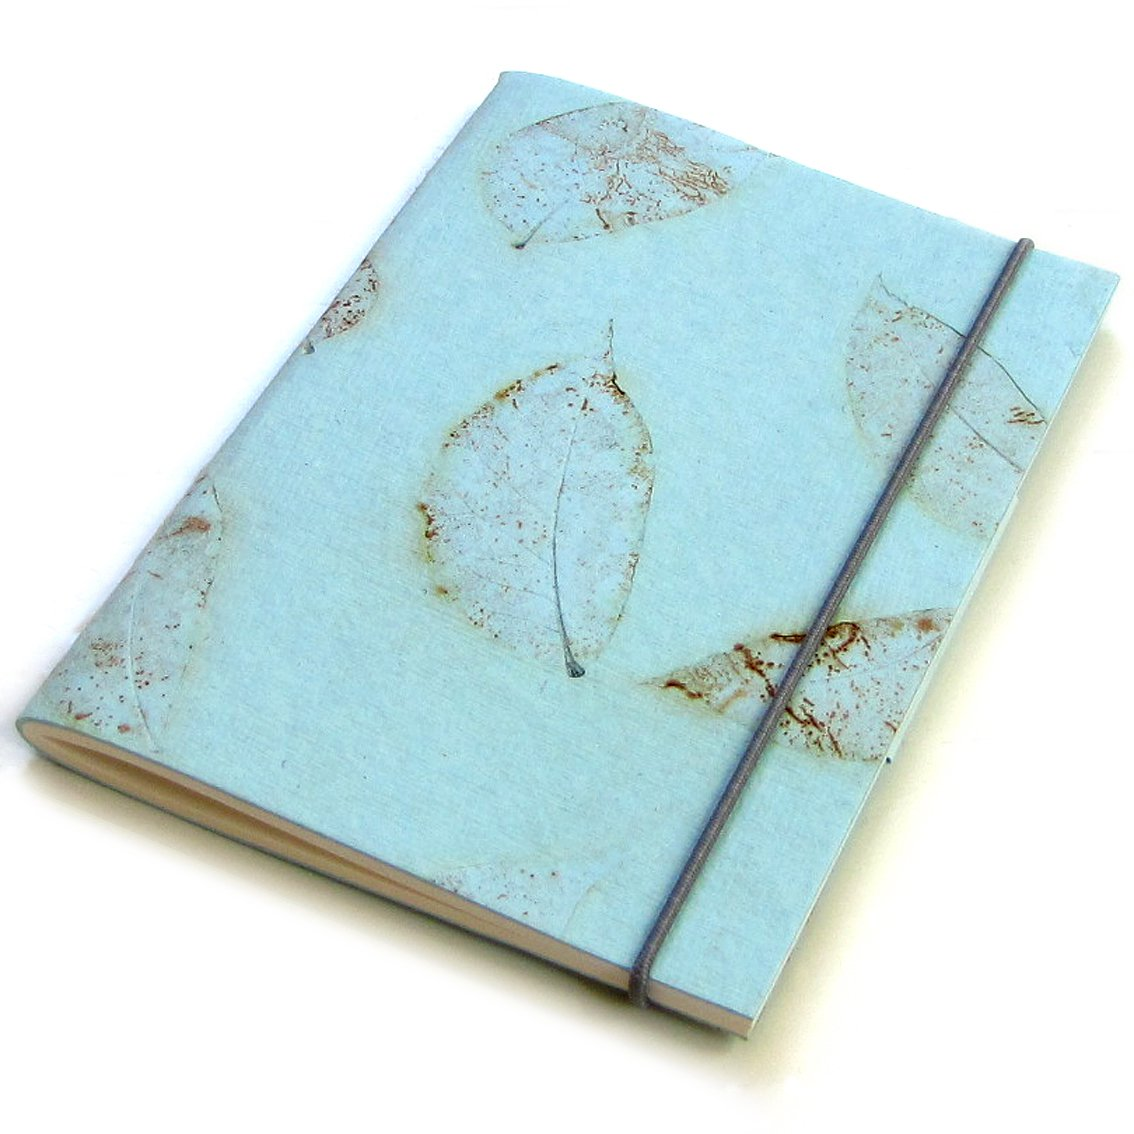 Handmade small leaf journal light blue recycled paper blank notebook 5x7 40pp Xmas mom present